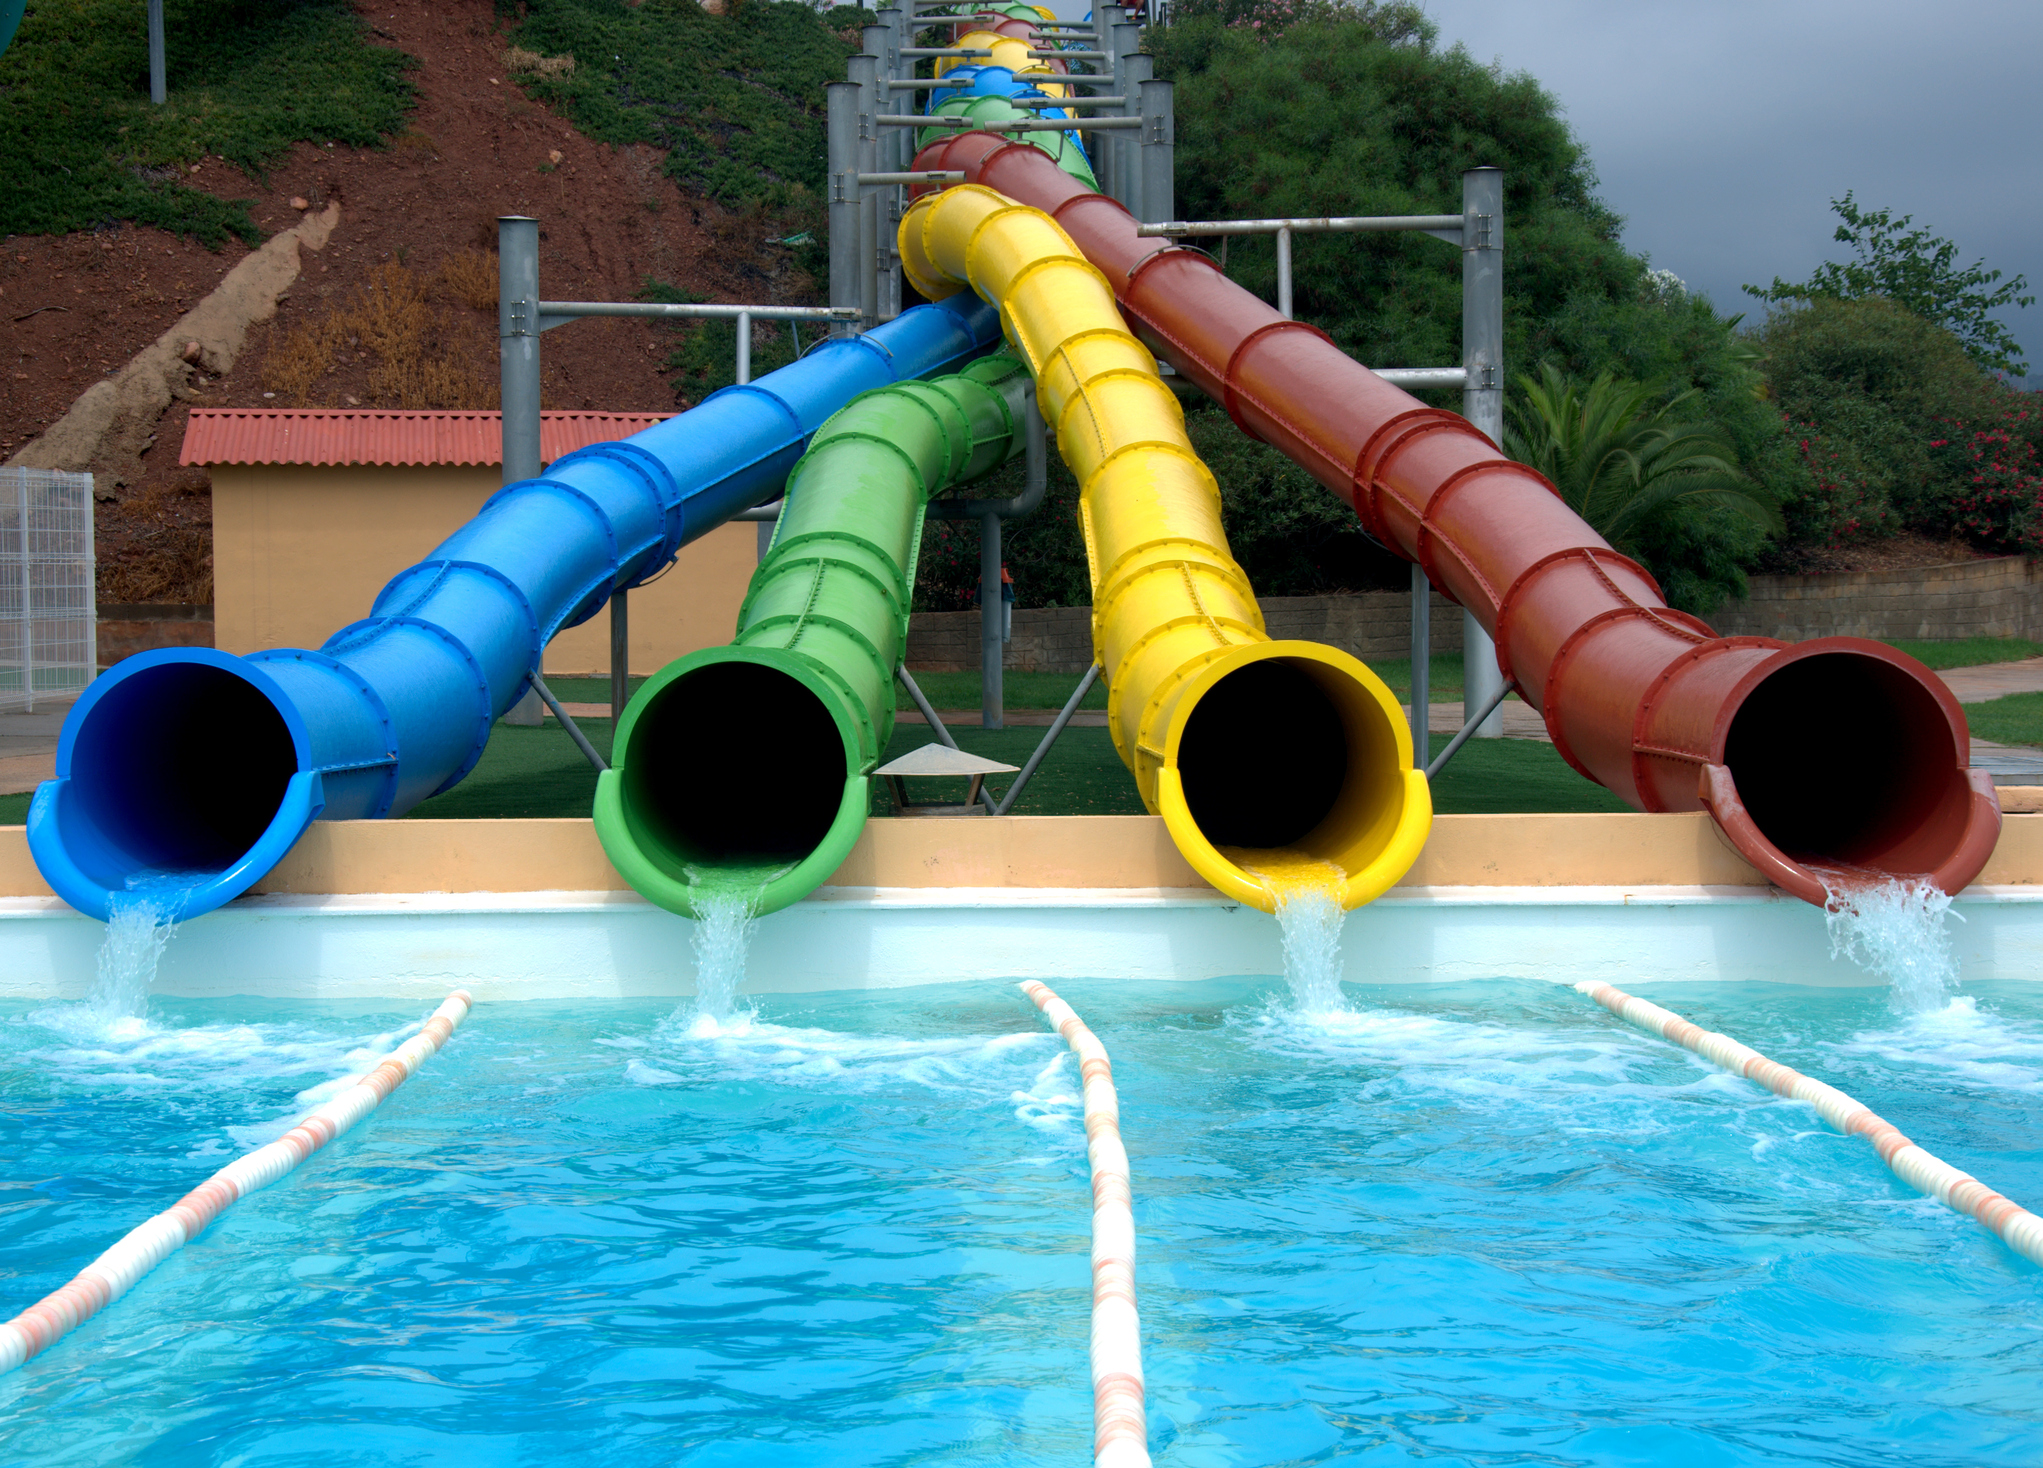 These totally bizarre slides from around the world will make you feel like a kid again